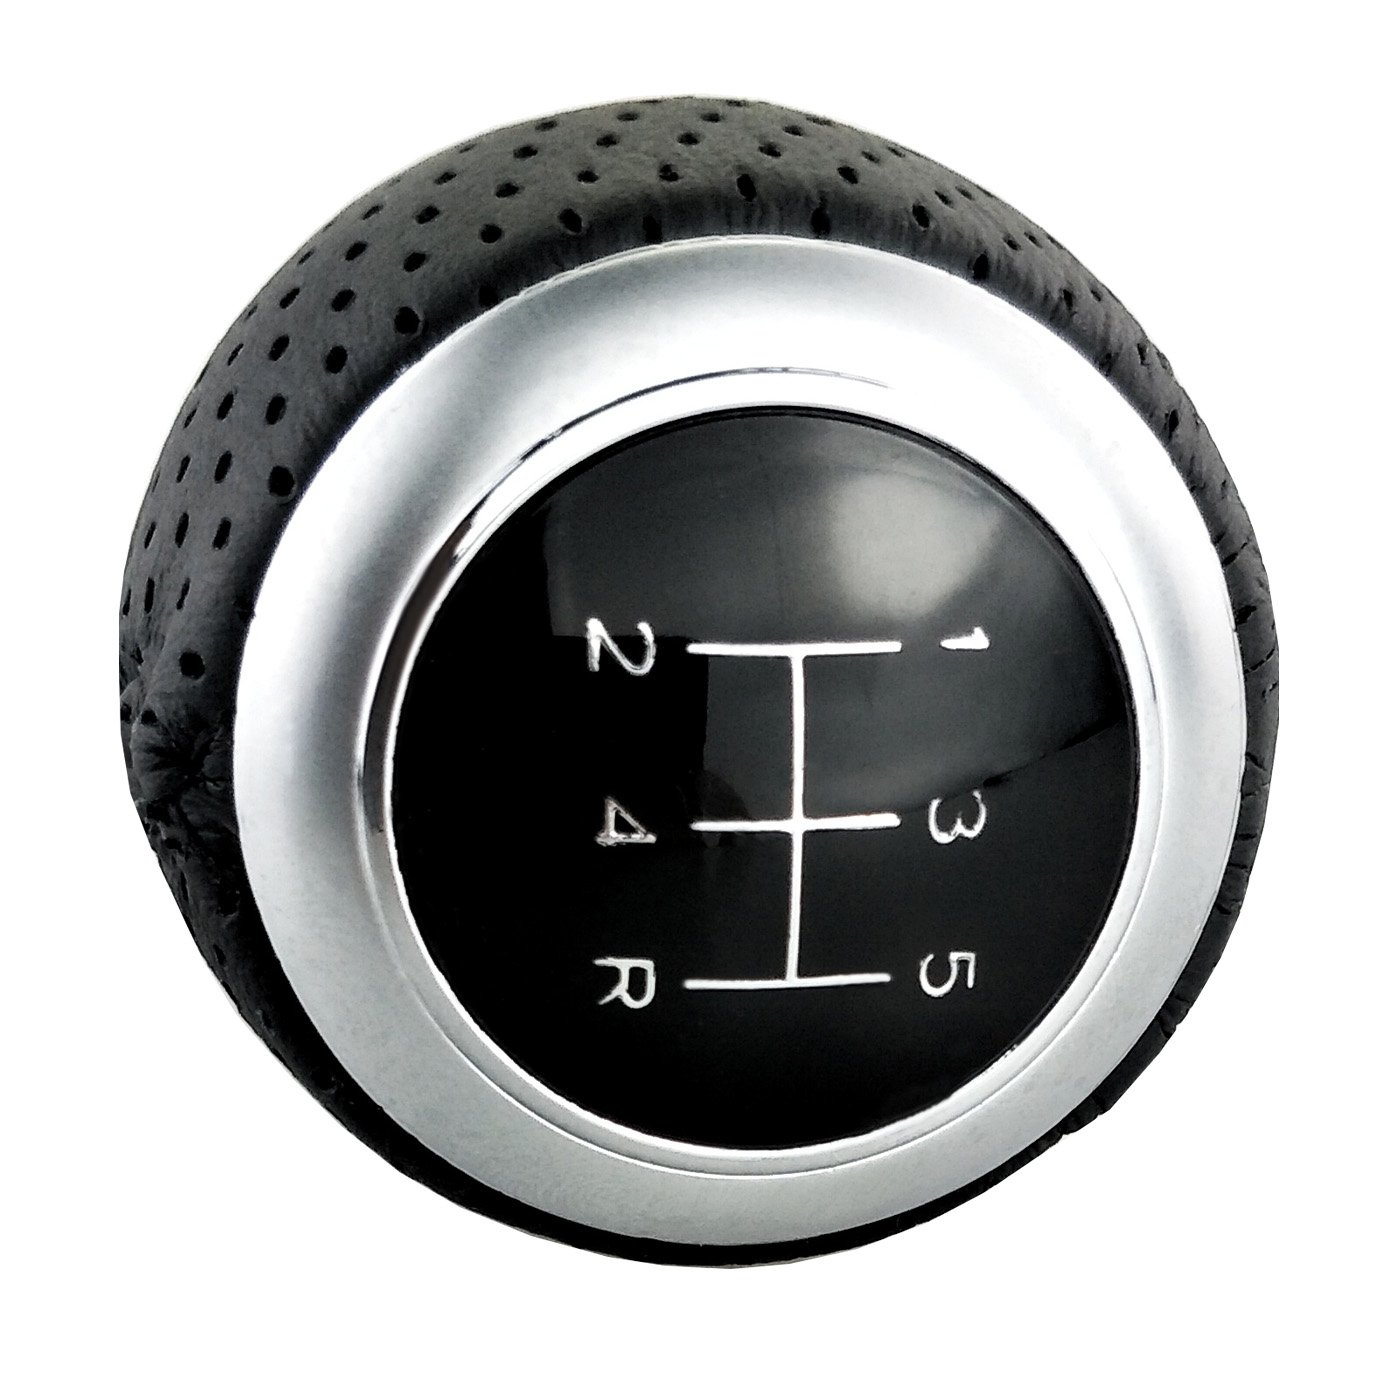 Lensuntom LUNSOM 5 Speed Shifter Knob Leather Universal Manual Transmission 5-SPD R Style Red Suture Gear Stick Shift Knobs Head